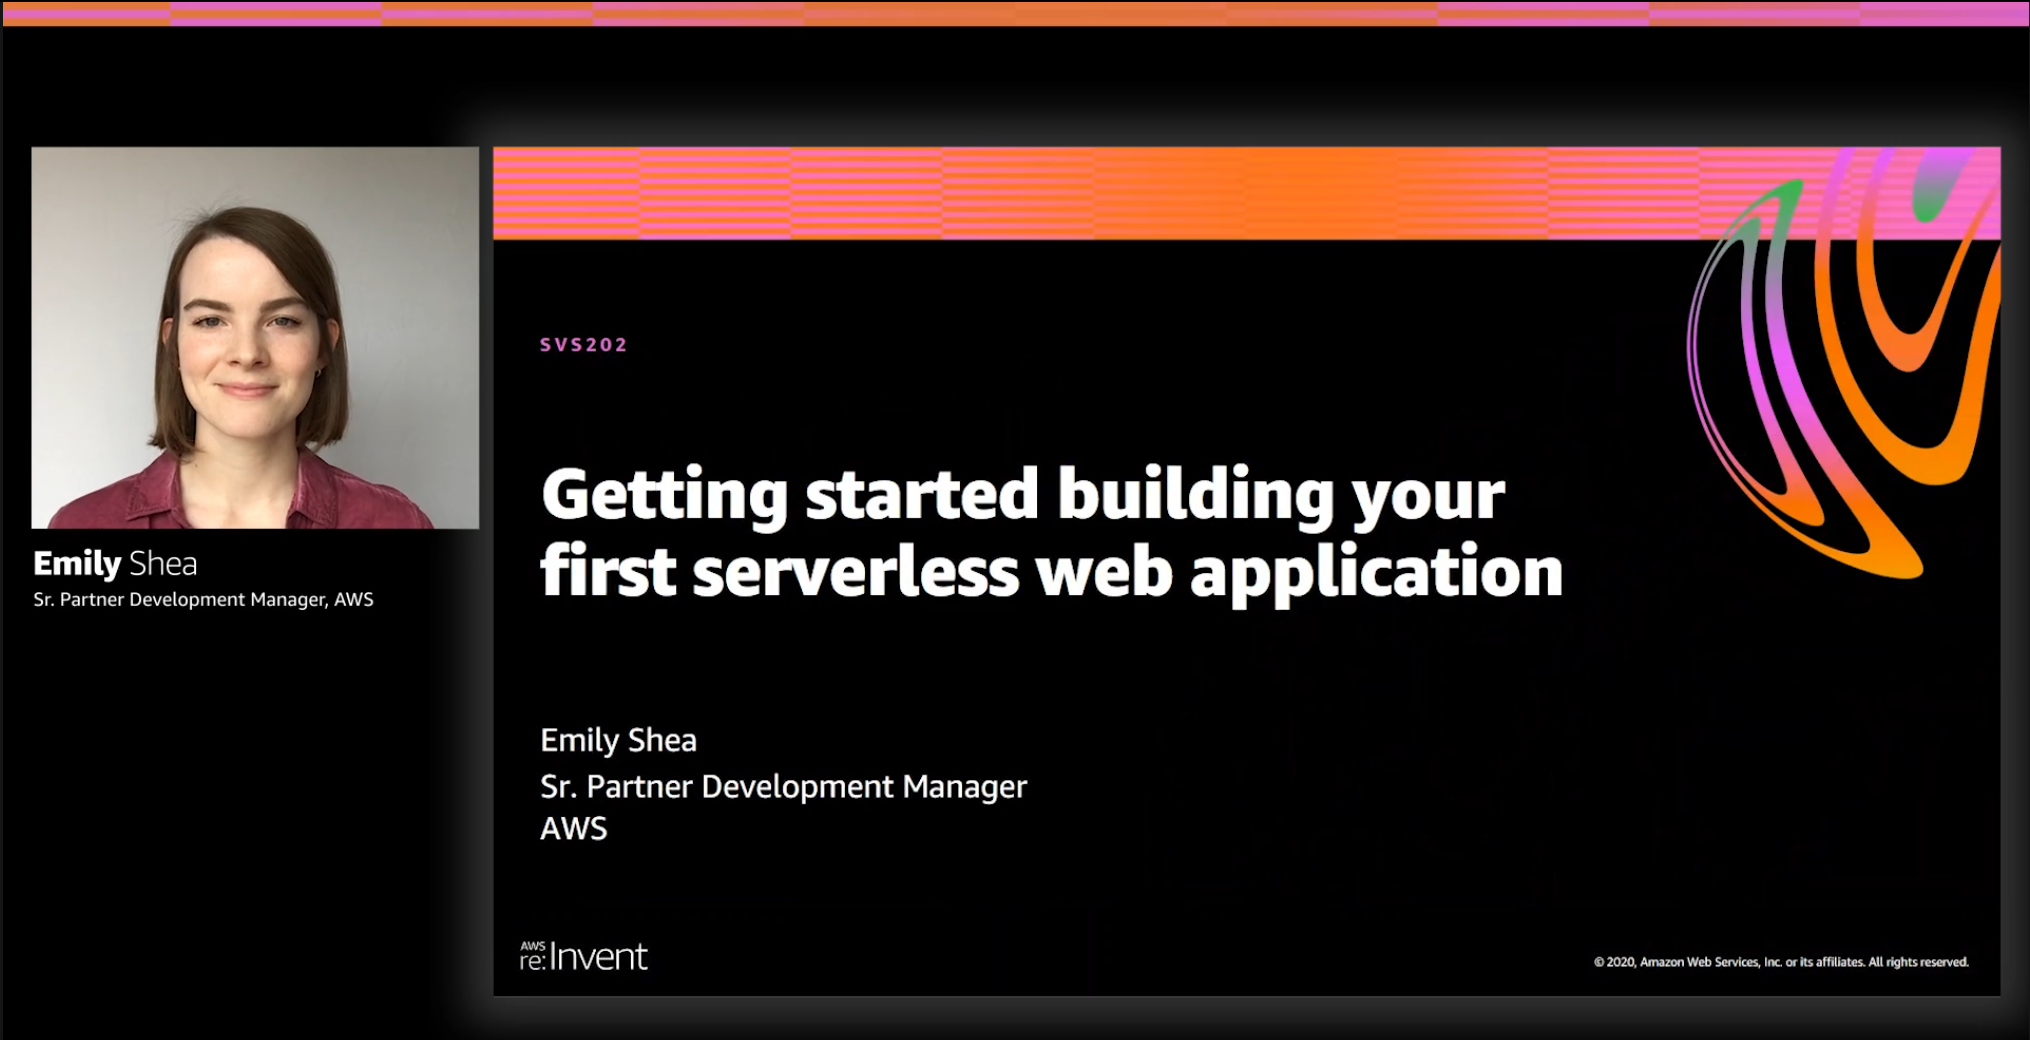 Screenshot from my reinvent talk